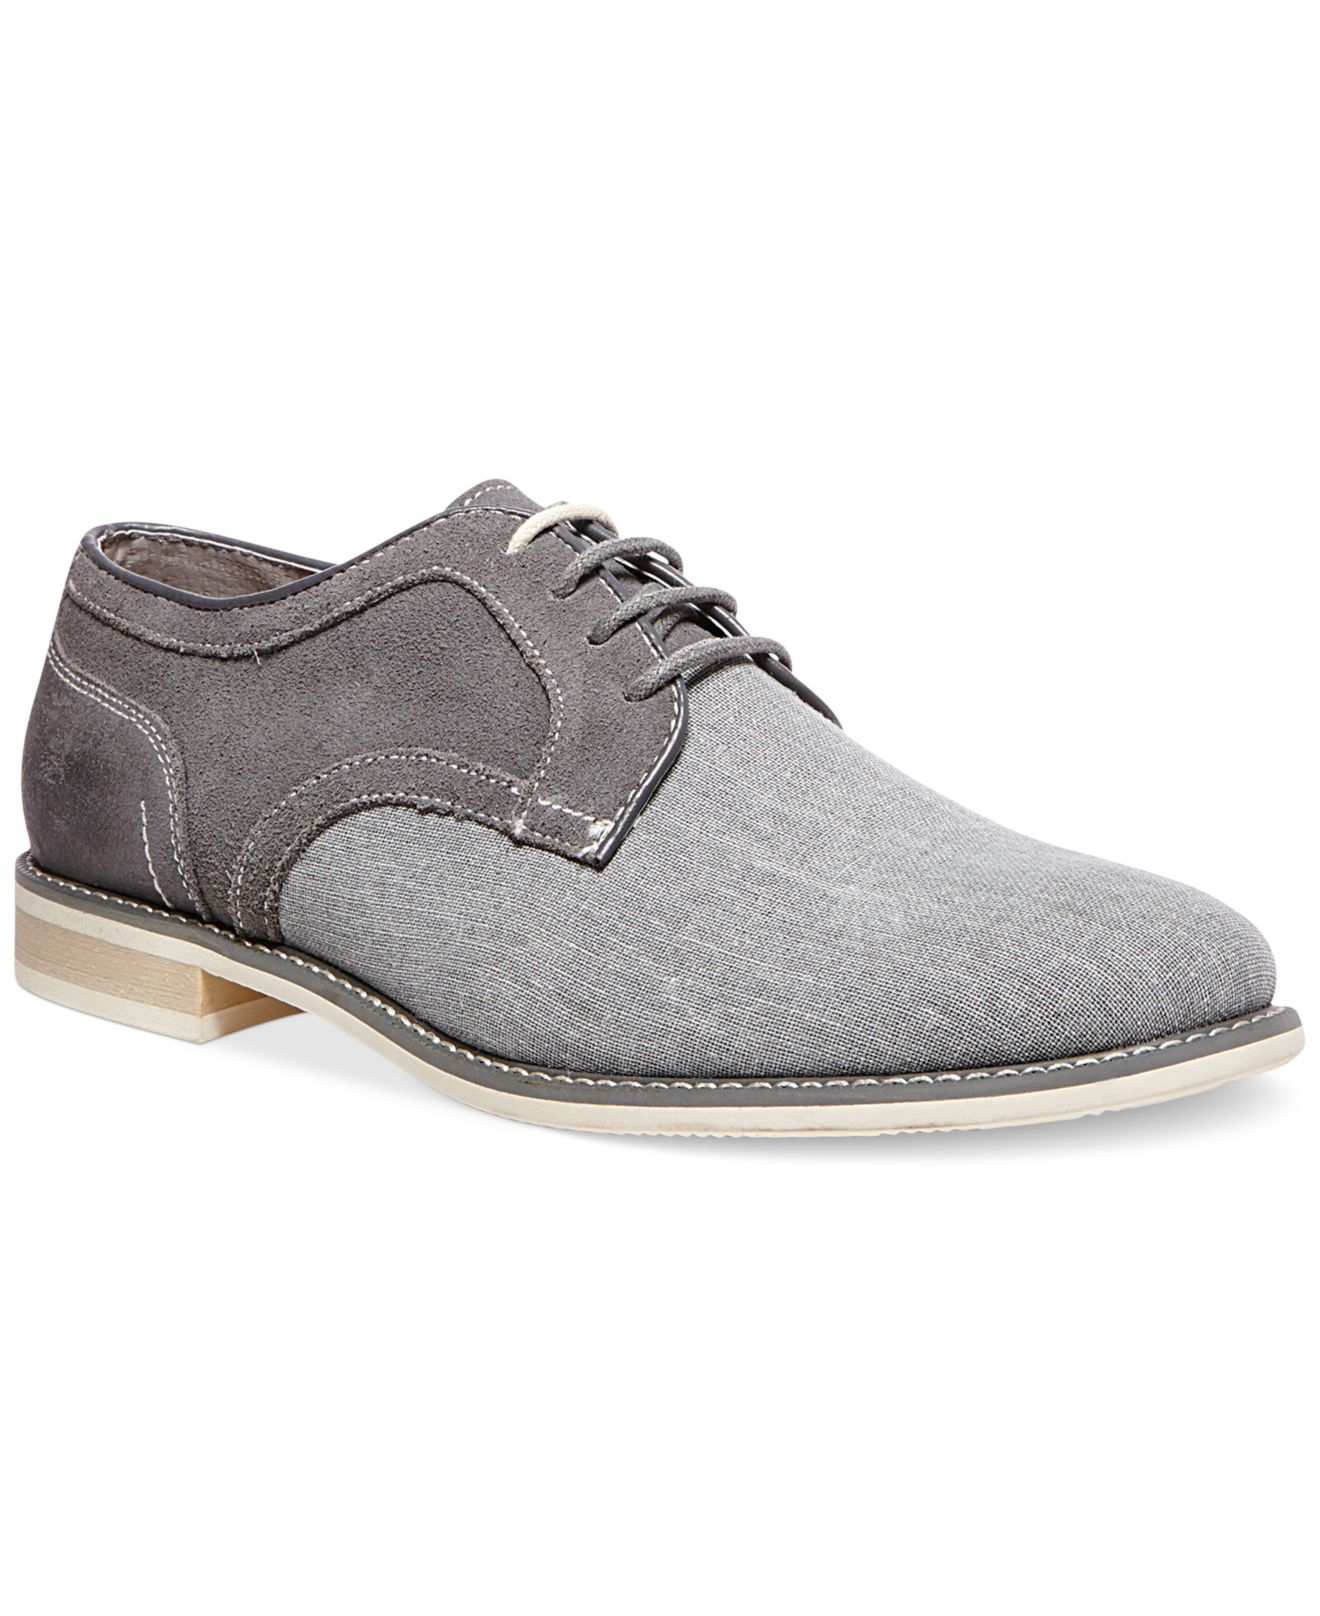 2cff71952cc Lyst - Steve Madden Sojourn Canvas Oxfords in Gray for Men